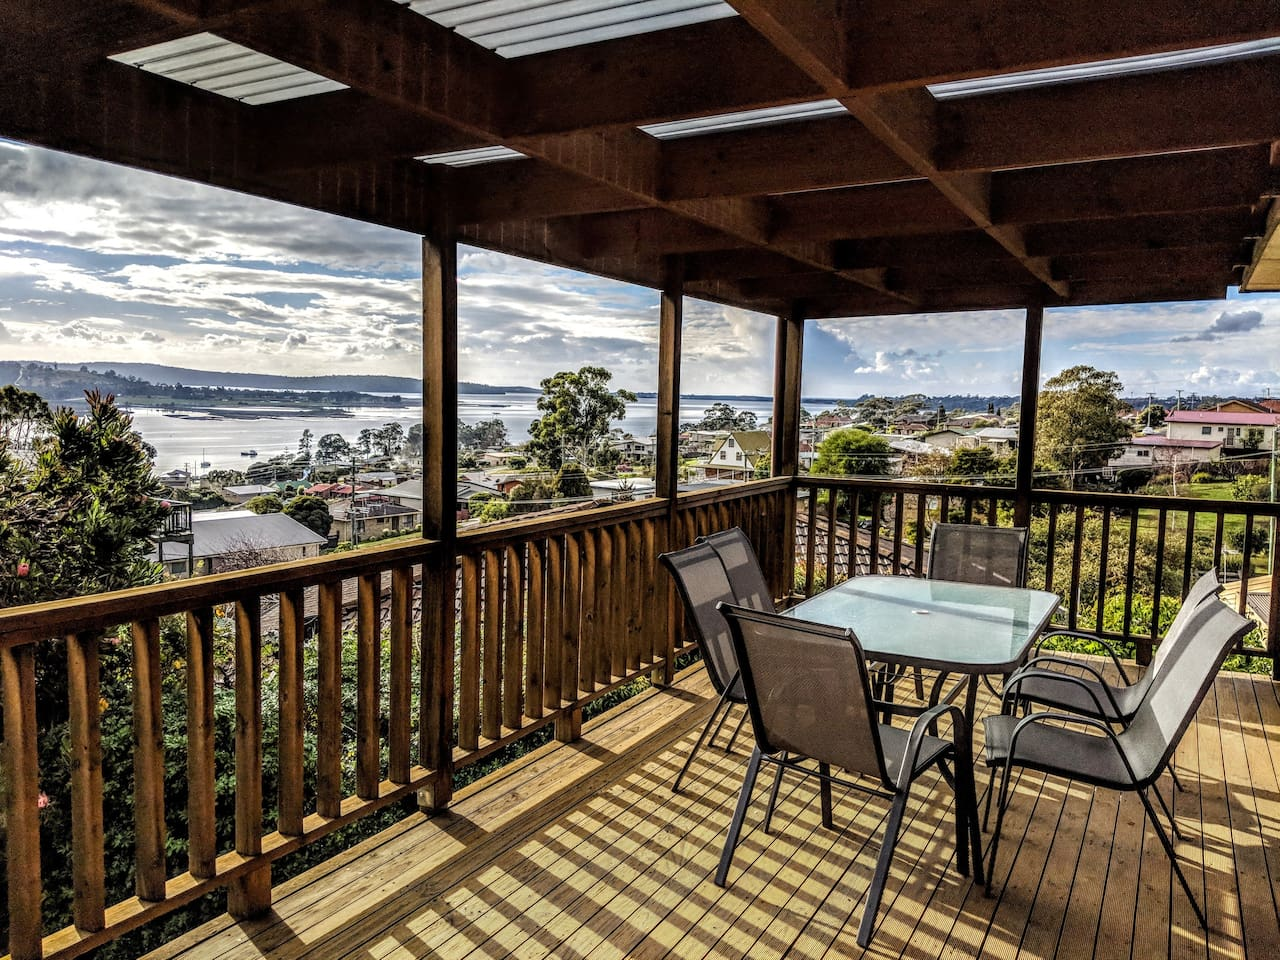 Idas Retreat boasts spectacular views over Georges Bay, St Helens. The large outdoor deck and setting is perfect for easing you into that relaxed holiday feel.